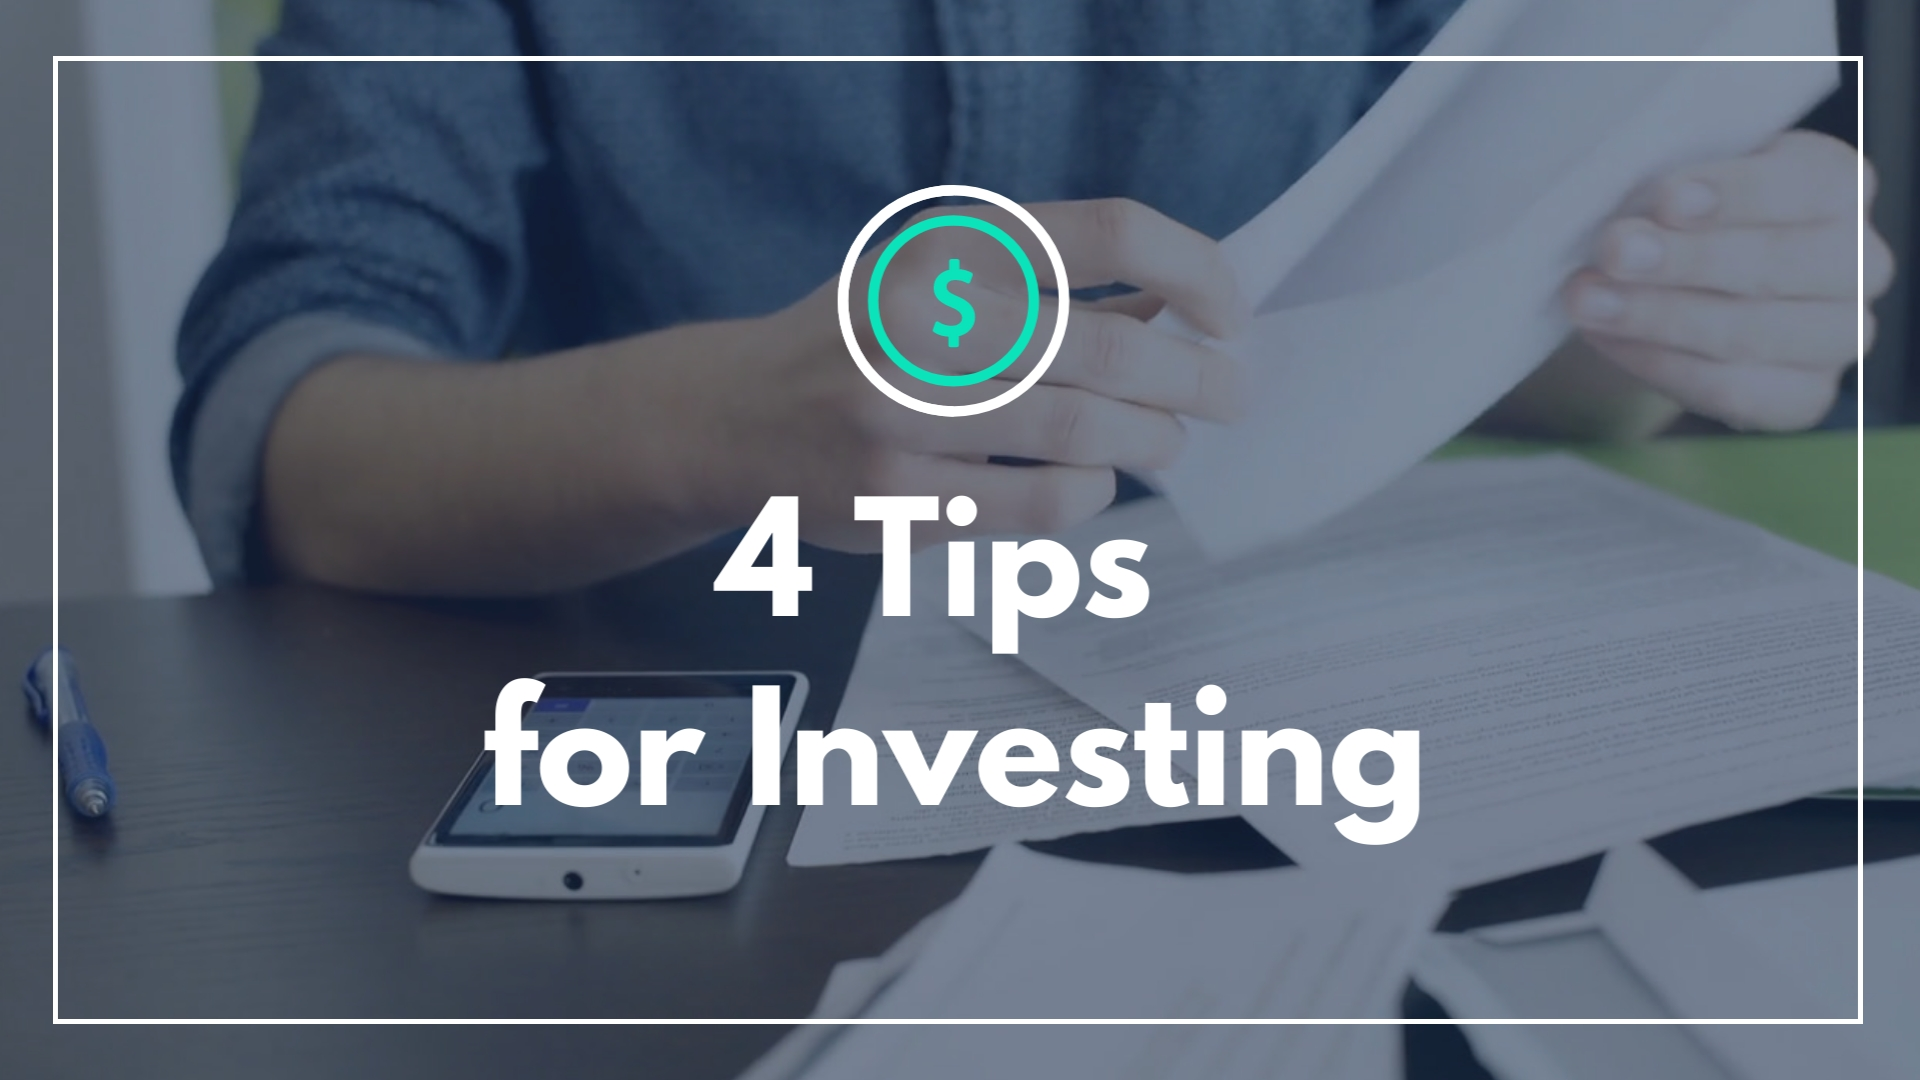 4 Tips for Investing - Listicle Video Template